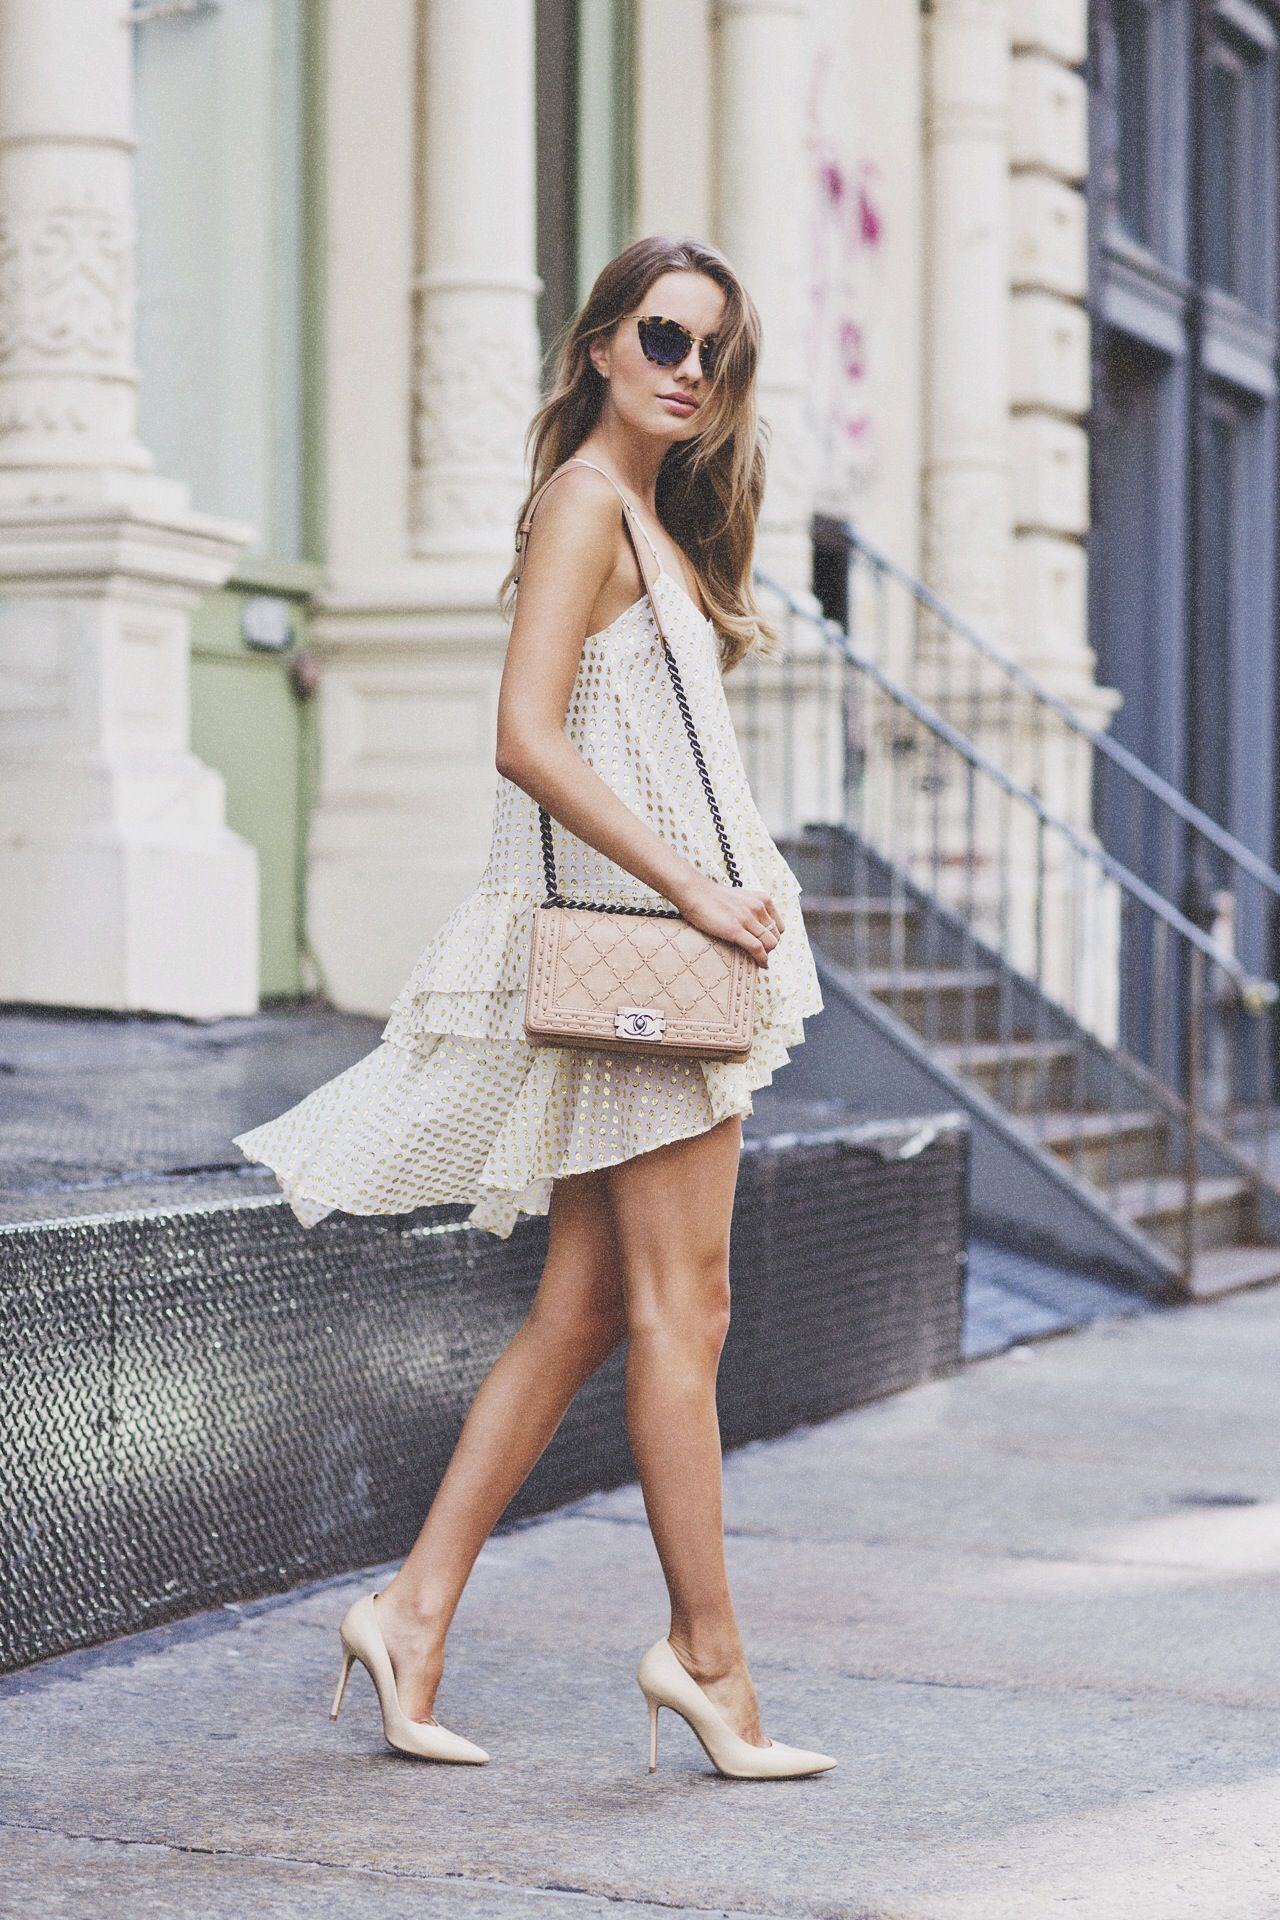 Sonya Esman is wearing a cami dress from Front Row, shoes from Celine, bag from Chanel and the sunglasses are from Miu Miu